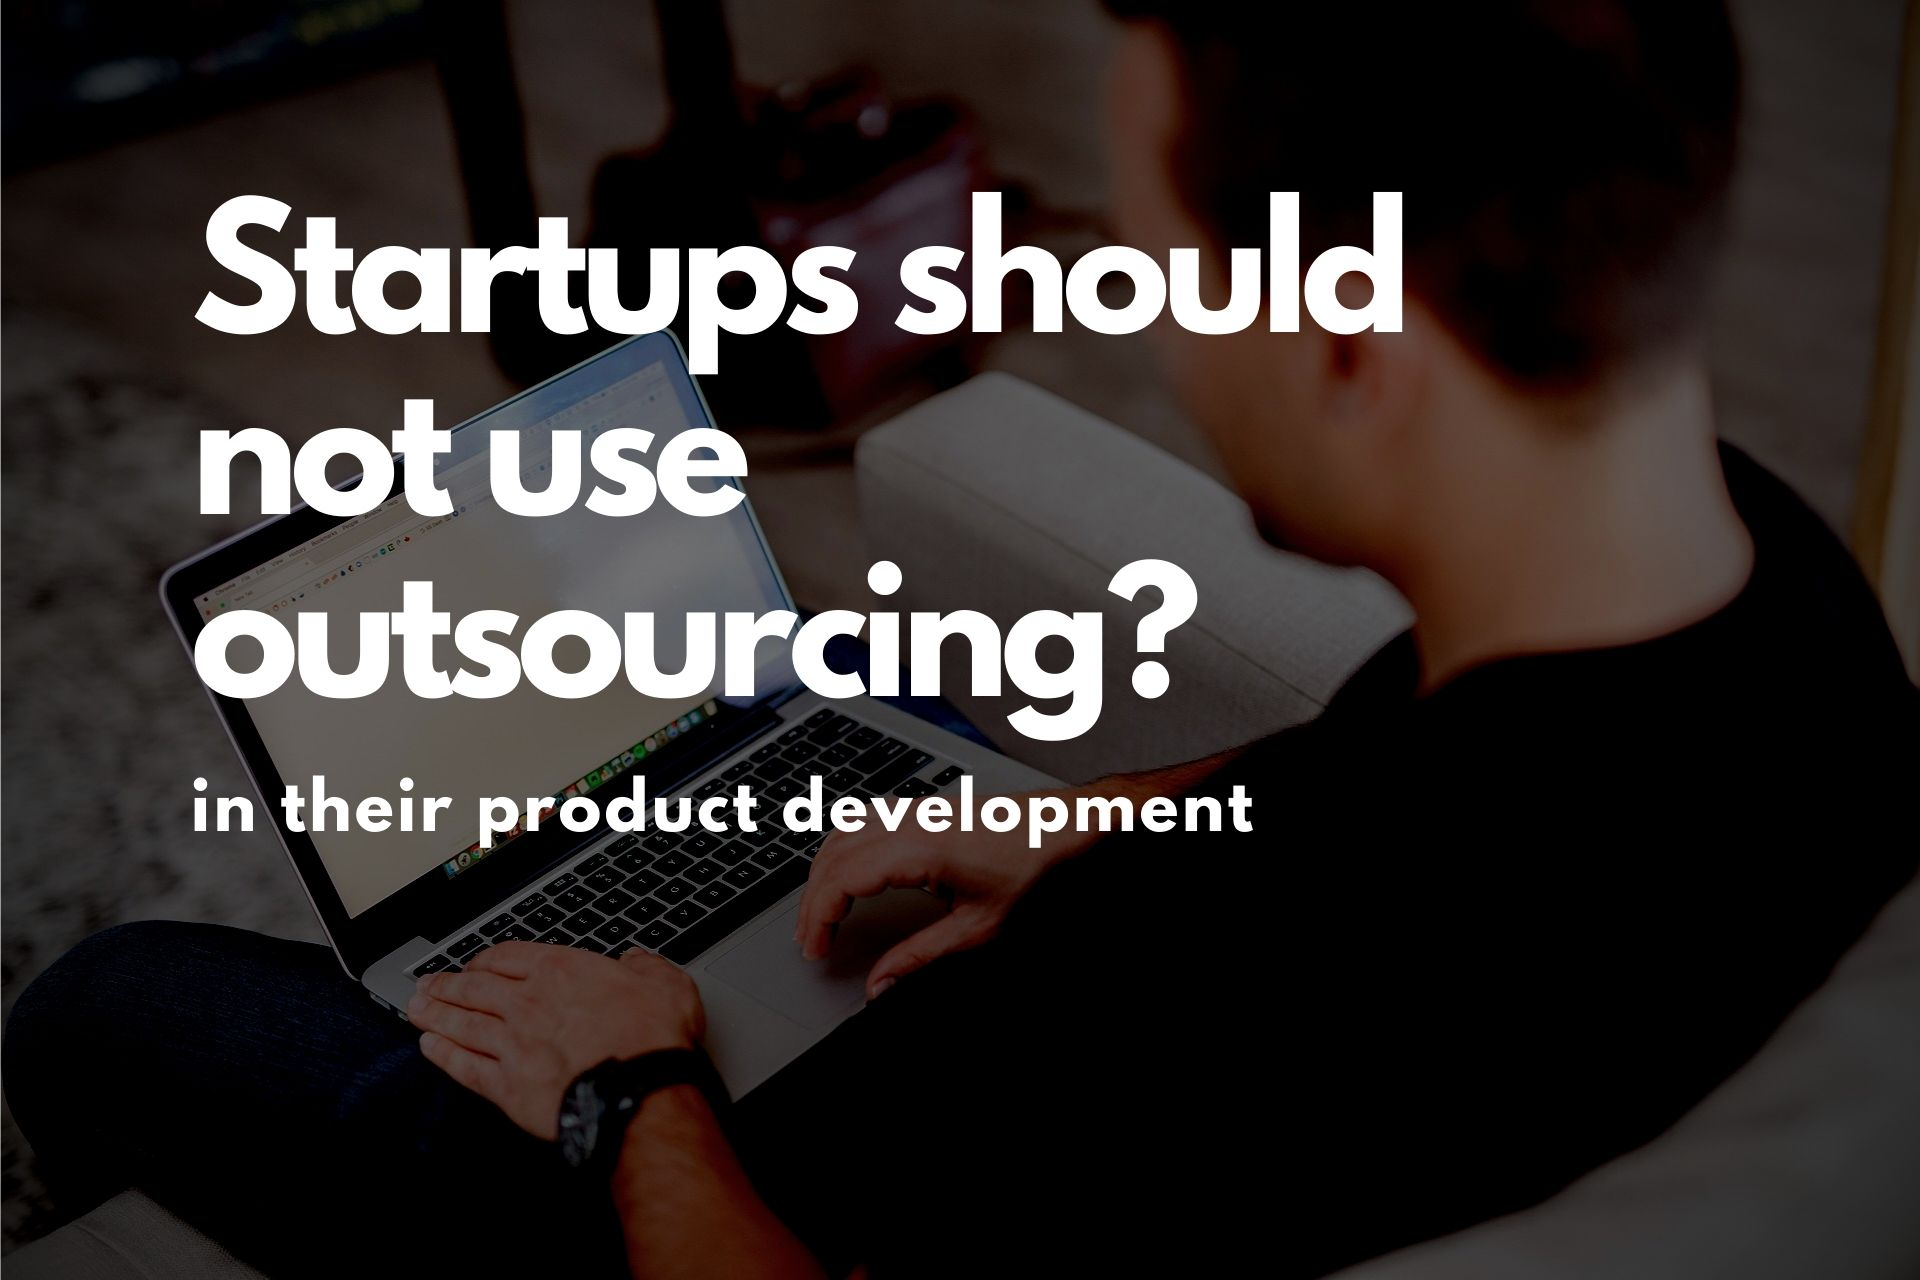 Startups should not use outsourcing in their product development cover photo